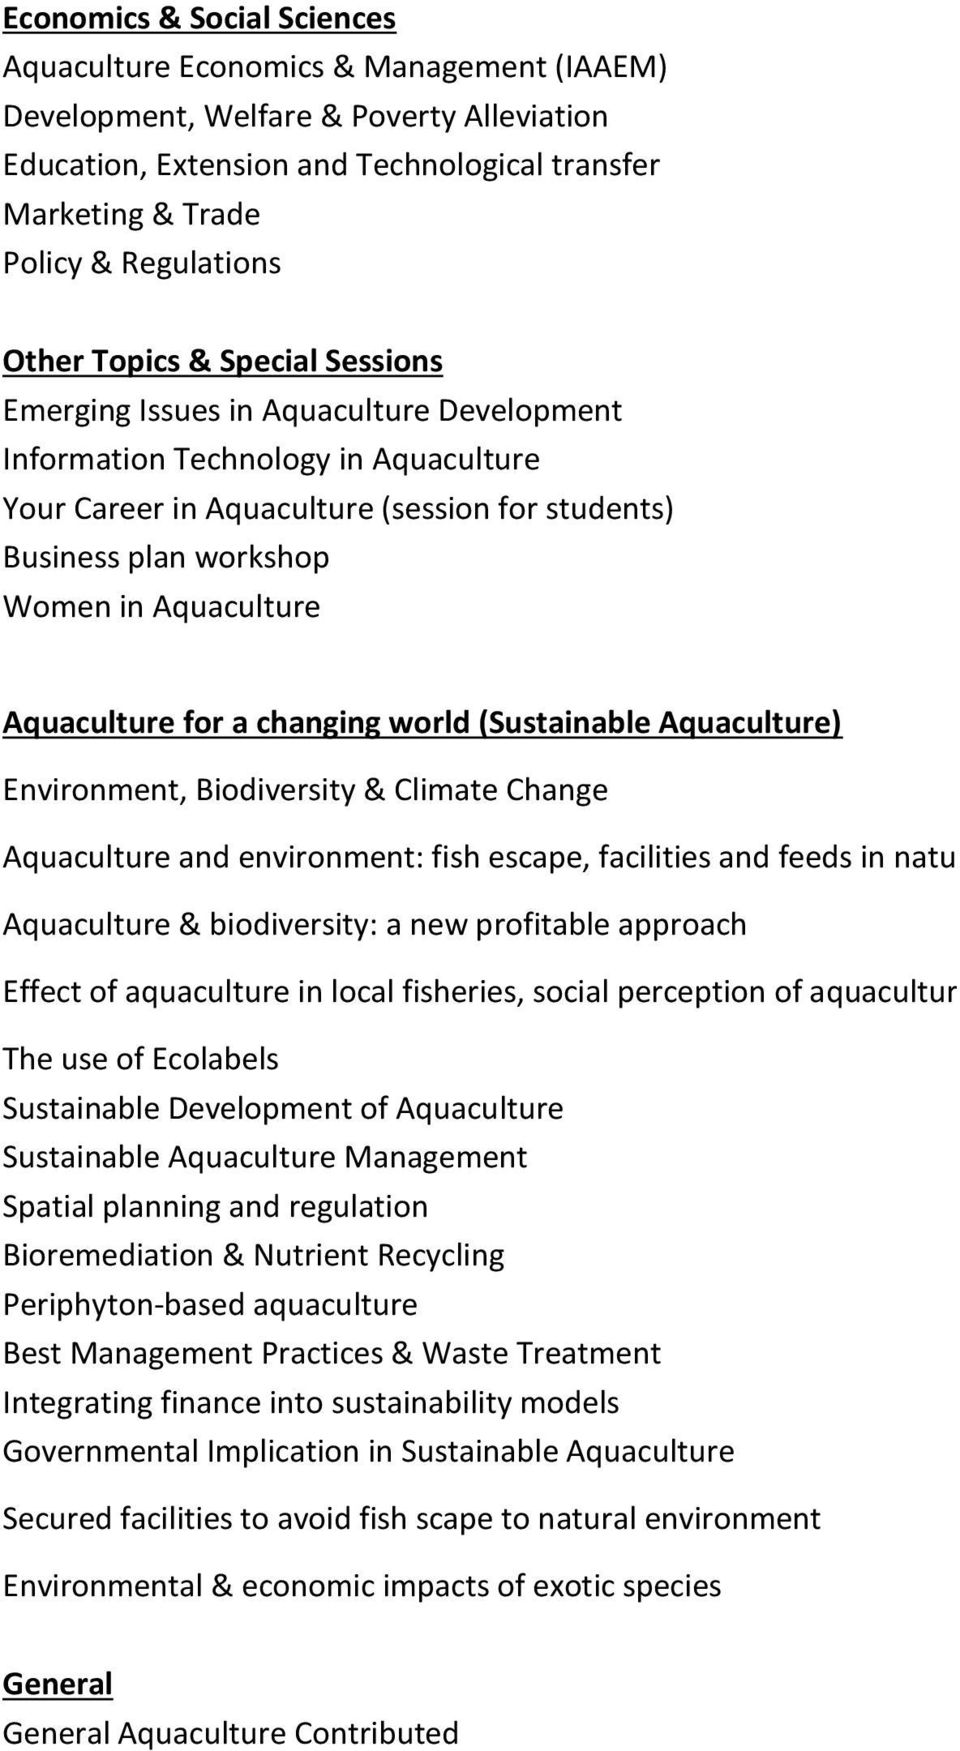 Women in Aquaculture Aquaculture for a changing world (Sustainable Aquaculture) Environment, Biodiversity & Climate Change Aquaculture and environment: fish escape, facilities and feeds in natural